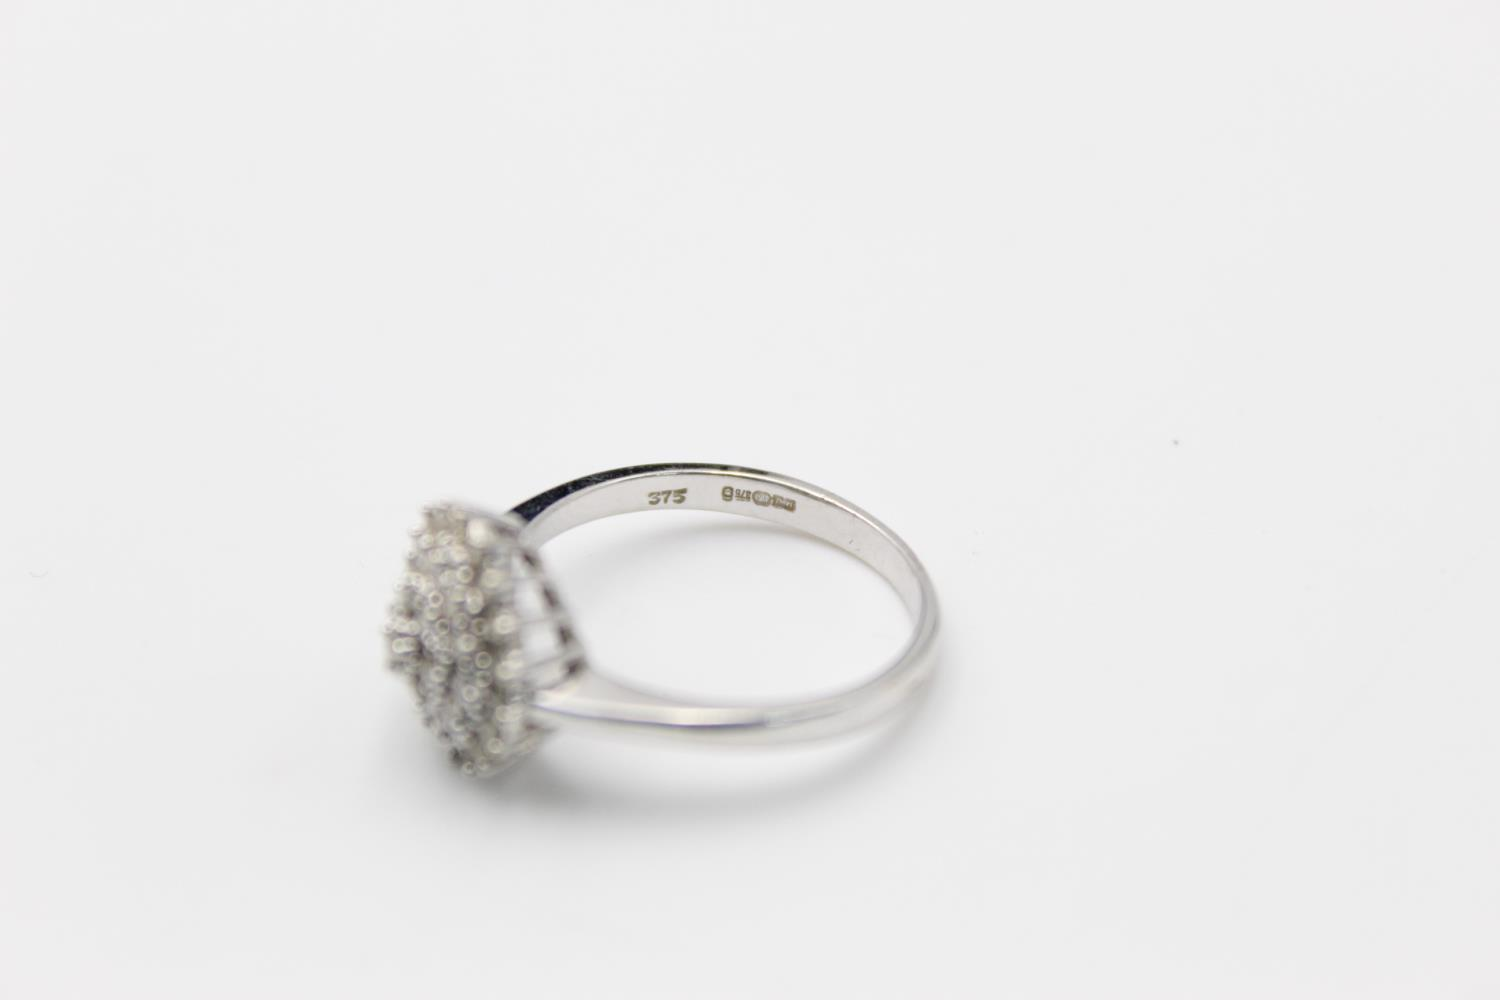 9ct white gold diamond cluster ring 3.4g Size P - Image 5 of 5